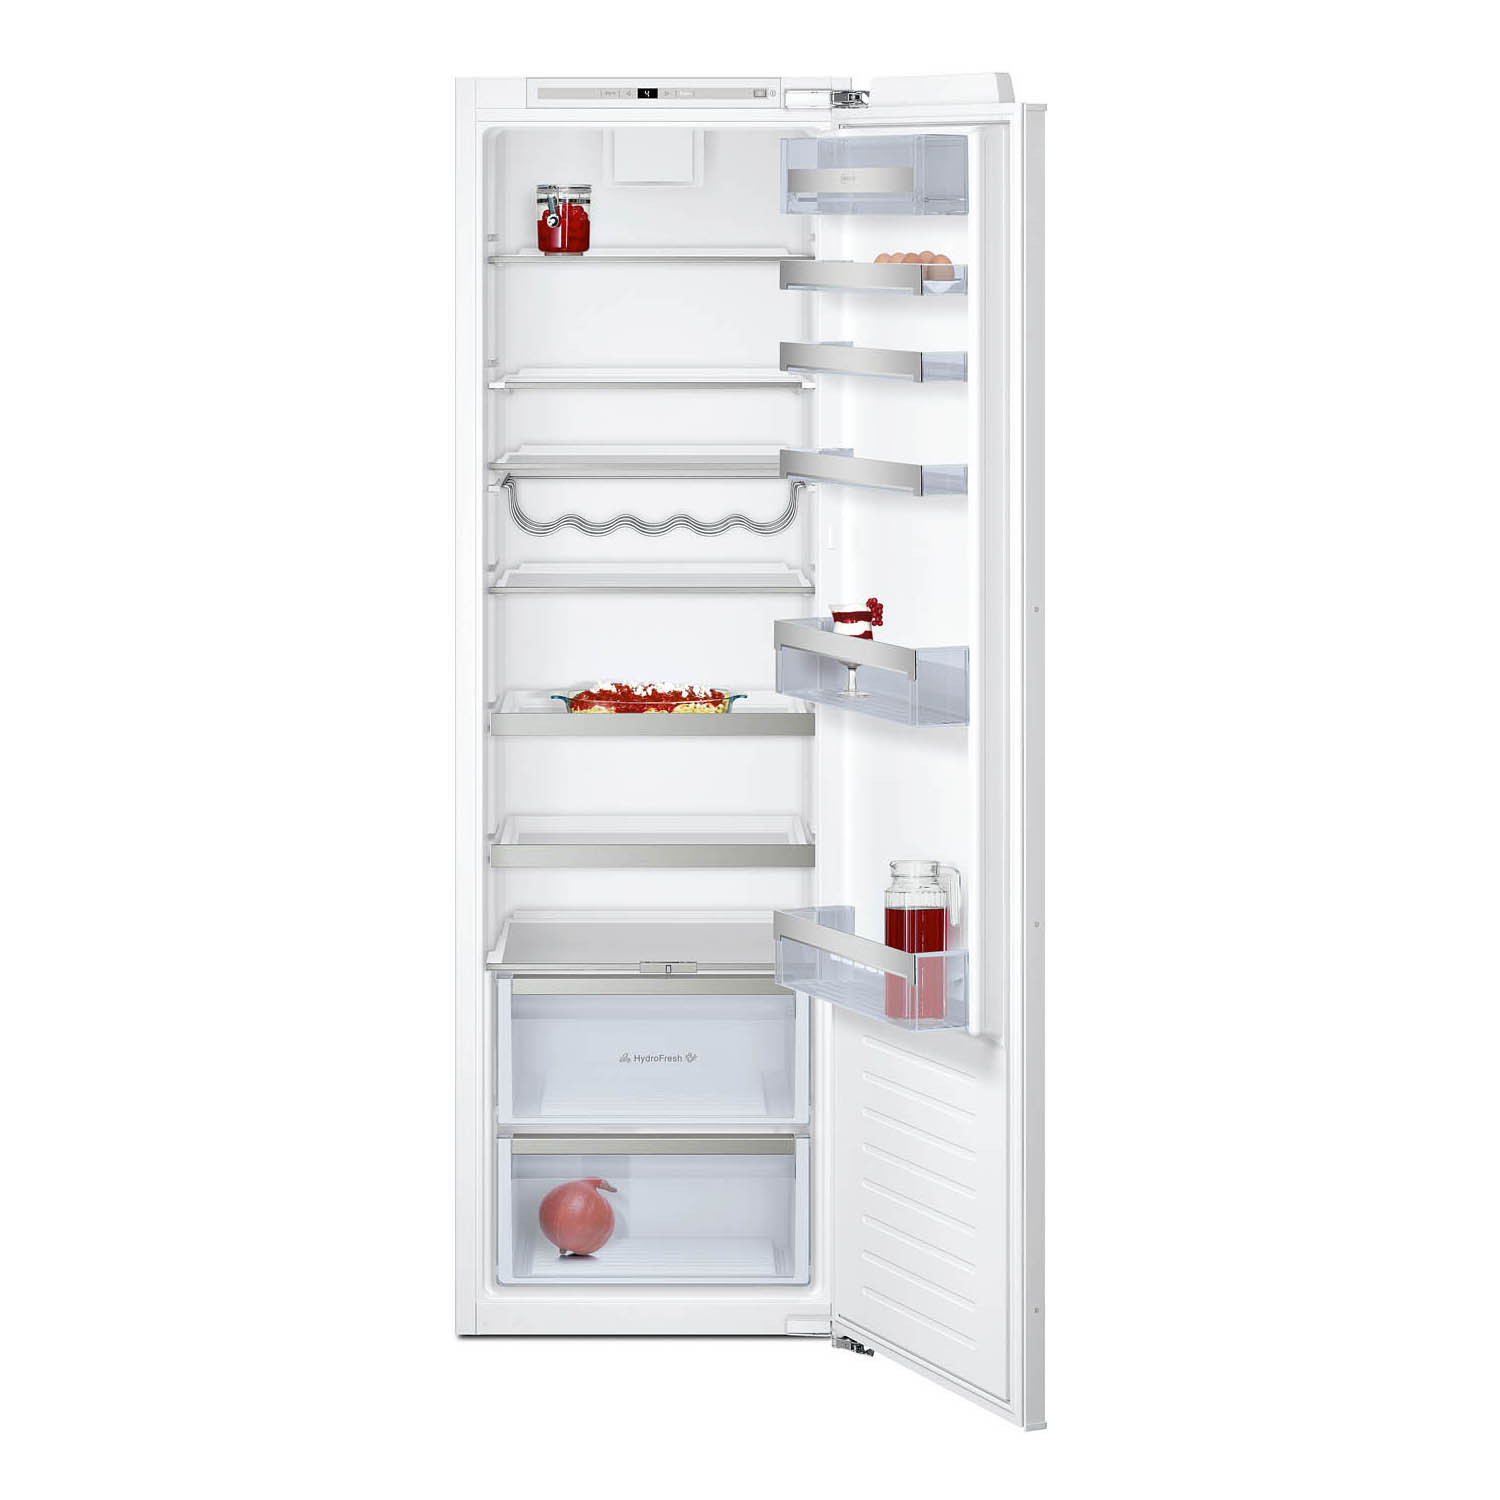 Neff N70 Built-In Fully Integrated FreshSafe 177cm Tall Larder Fridge KI1813FE0G